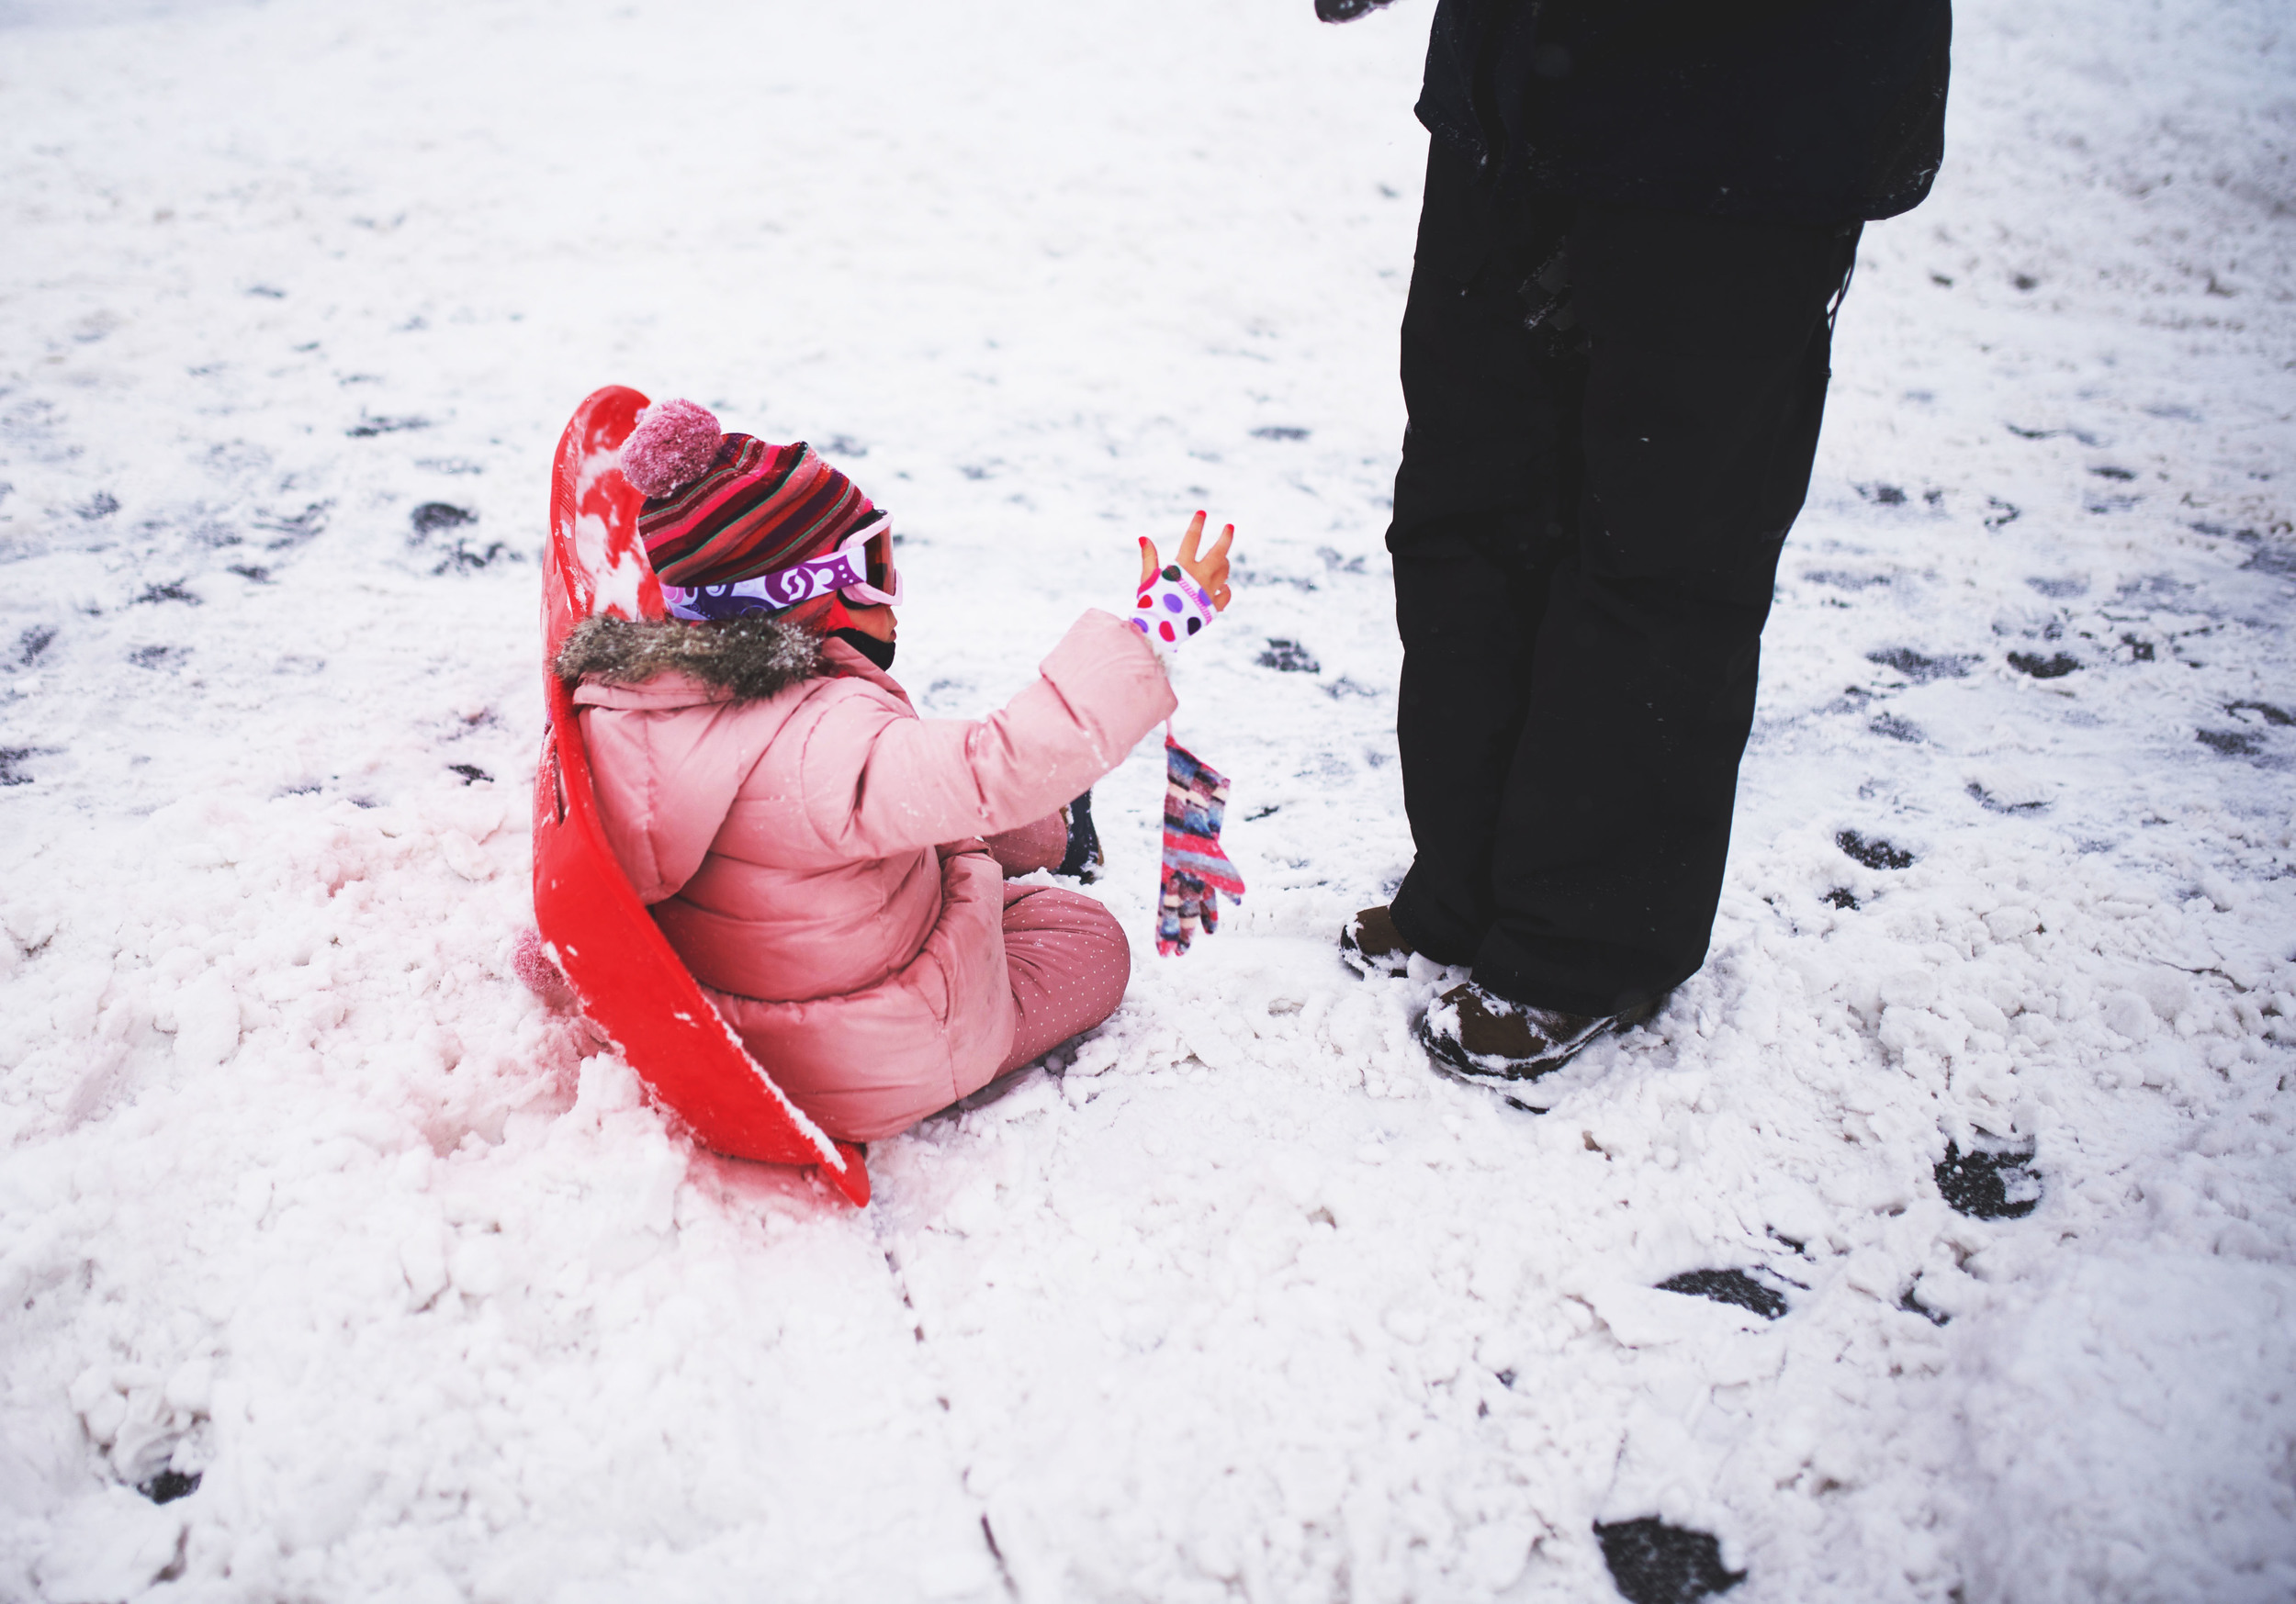 This little girl was adorable while her dad was helping her with her gloves